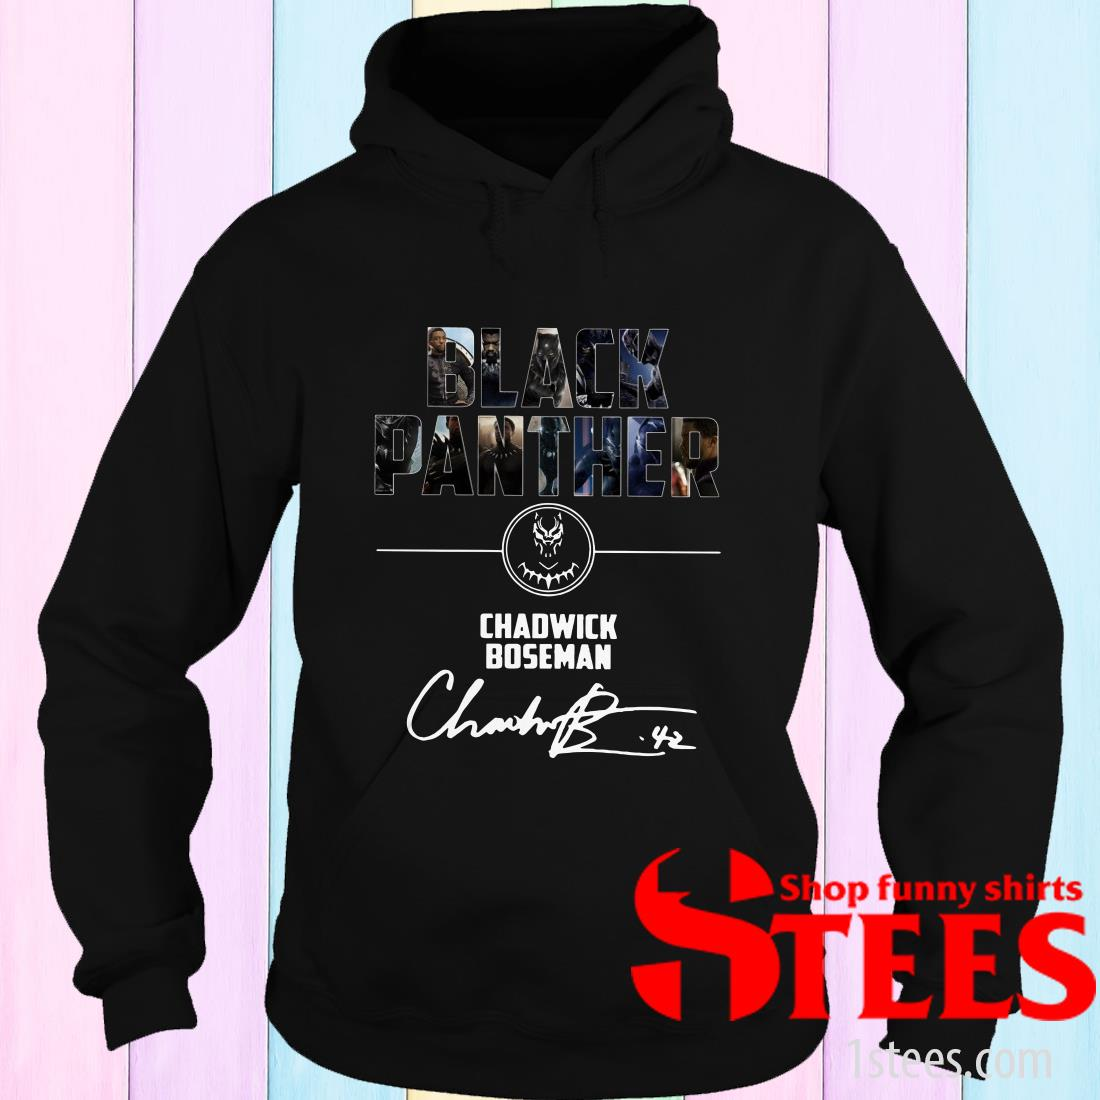 Black Panther Chadwick Boseman Signature Hoodies